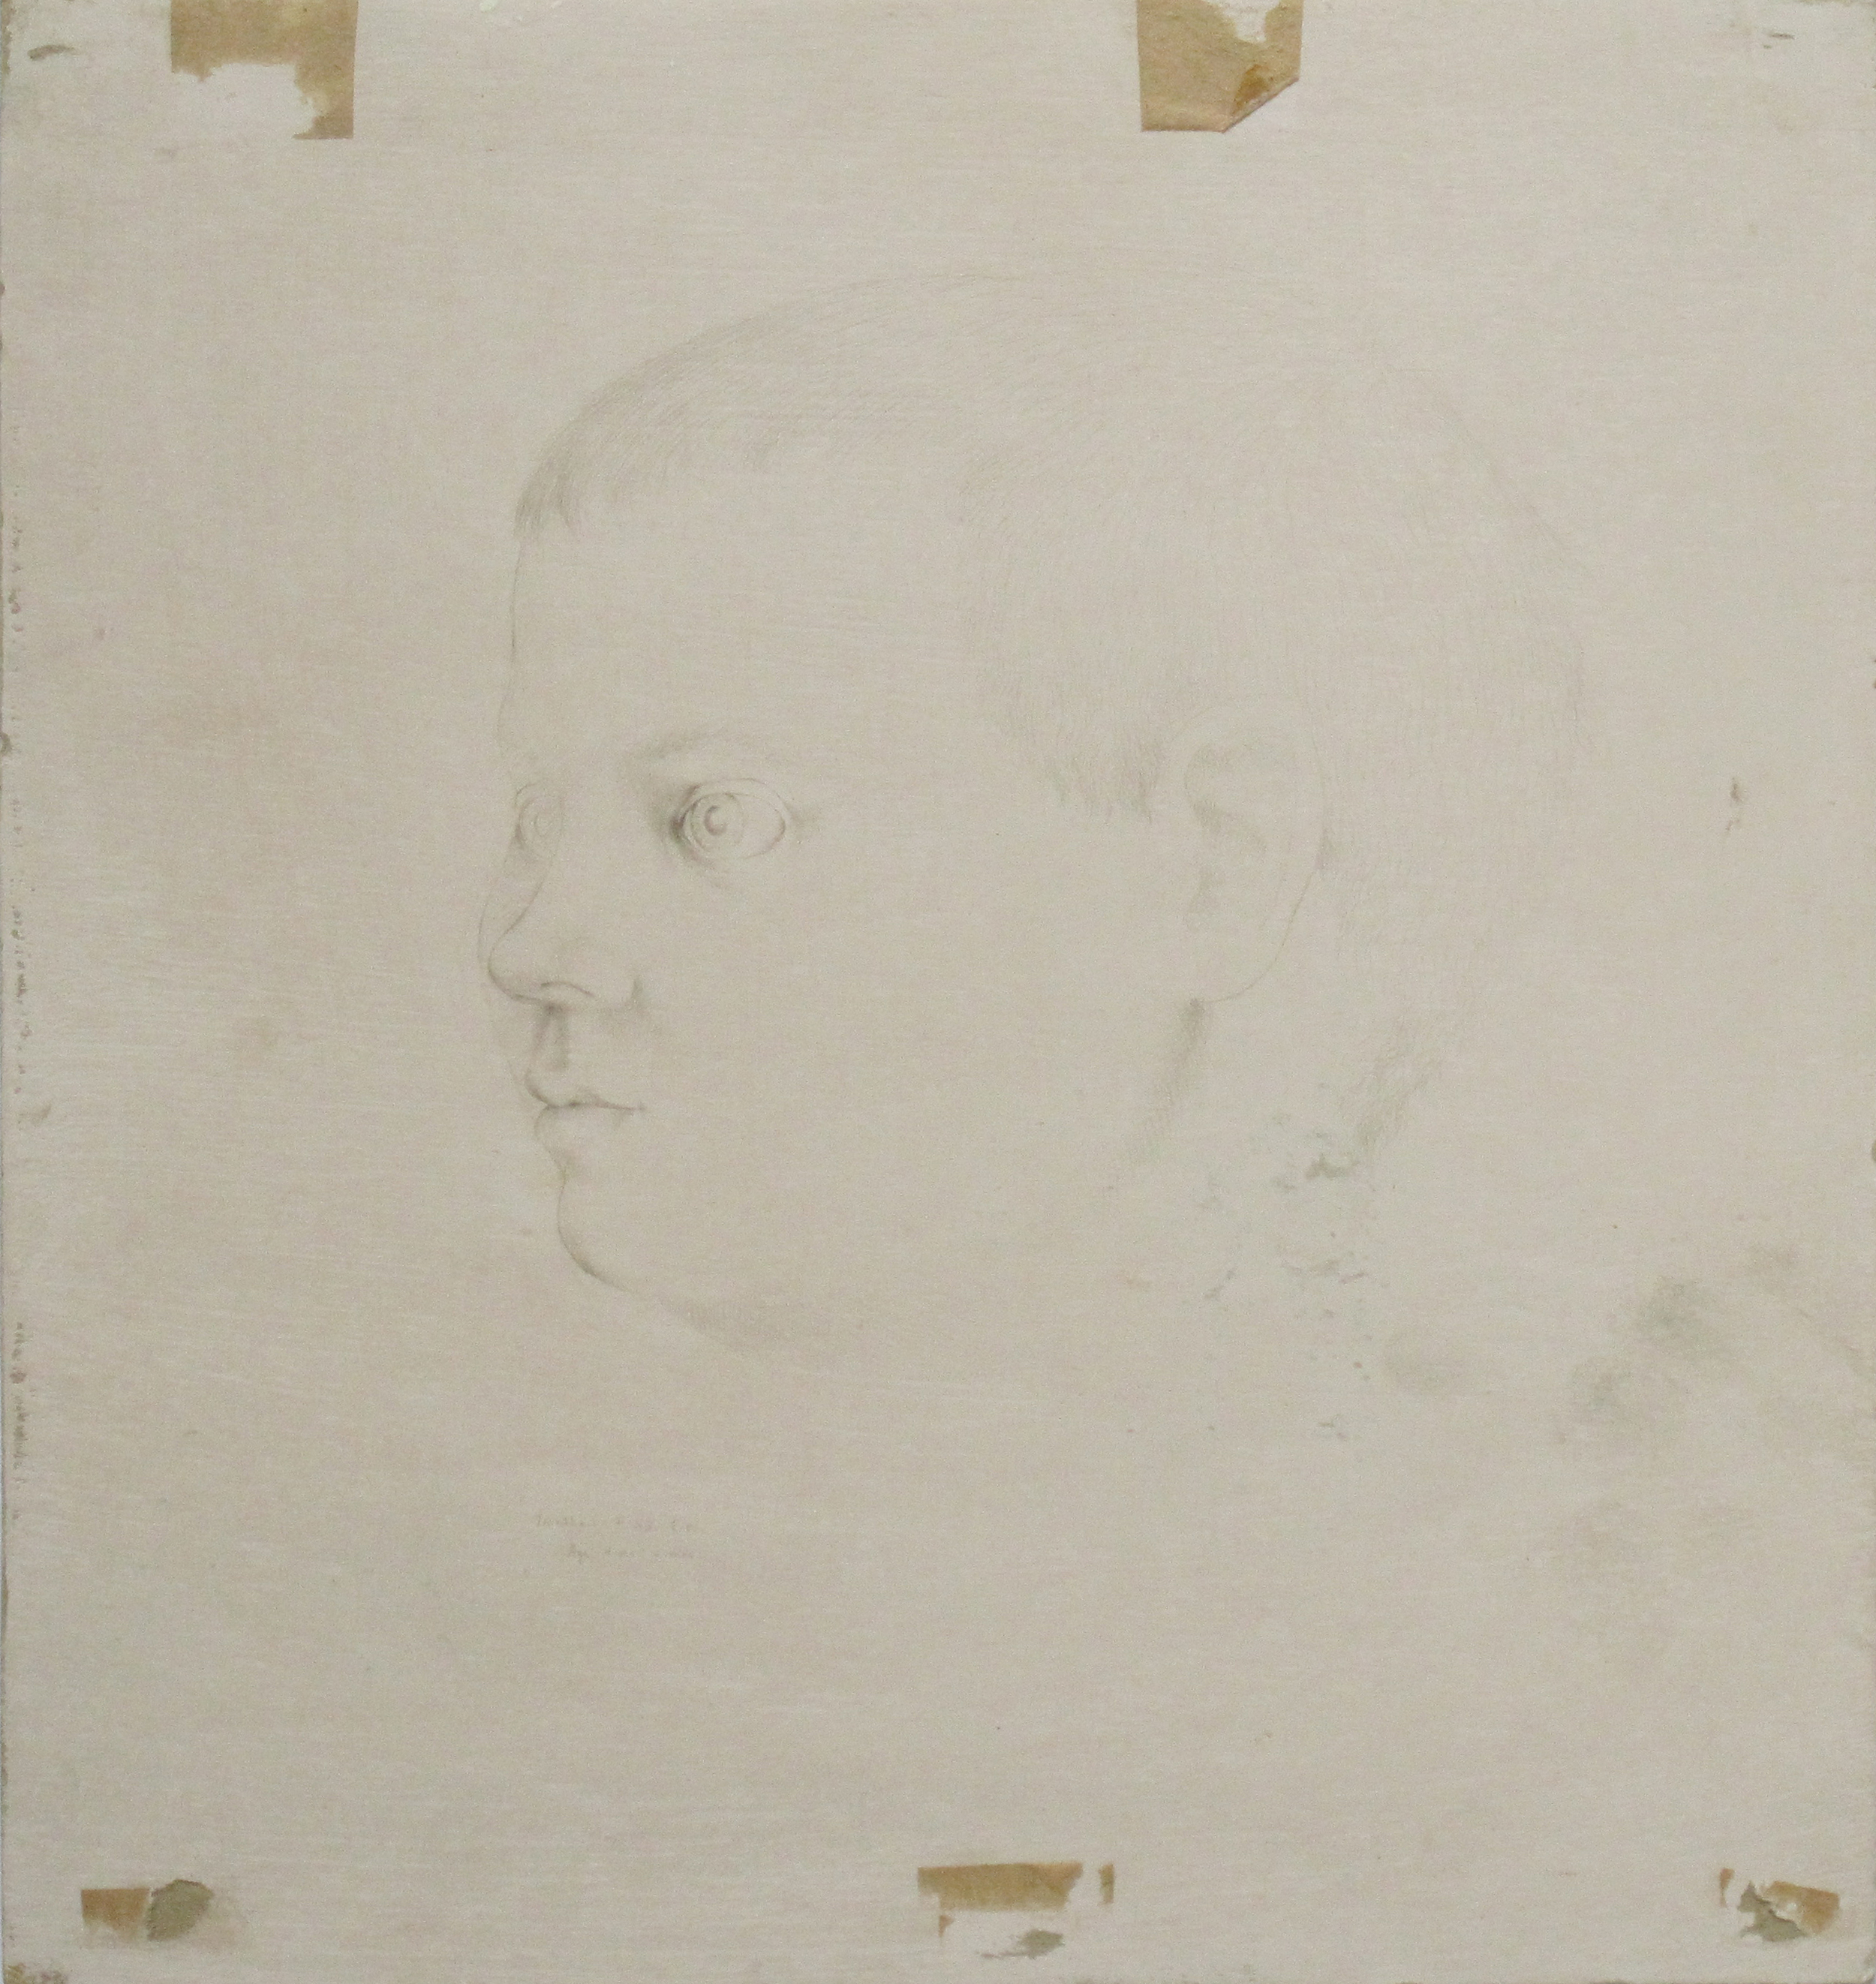 JONATHAN F. 53 E.W 4 YRS. 4 MONTHS, Nov. 15, 1942, Pencil on Gessoed Chipboard, 14 x 13""